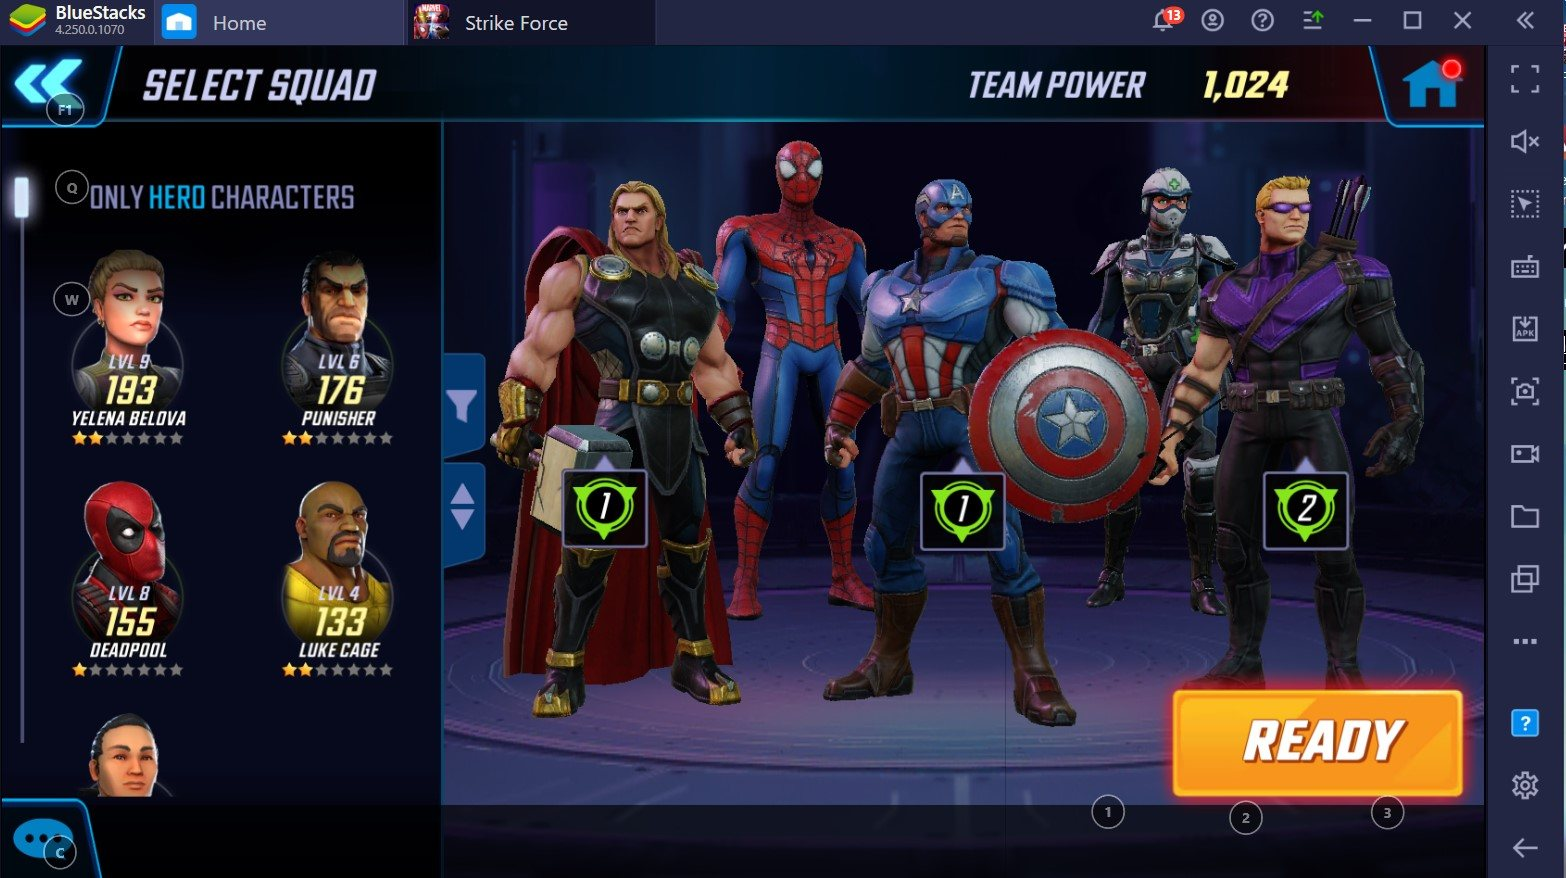 Warriors Assemble: BlueStacks Guide to War Teams in MARVEL Strike Force